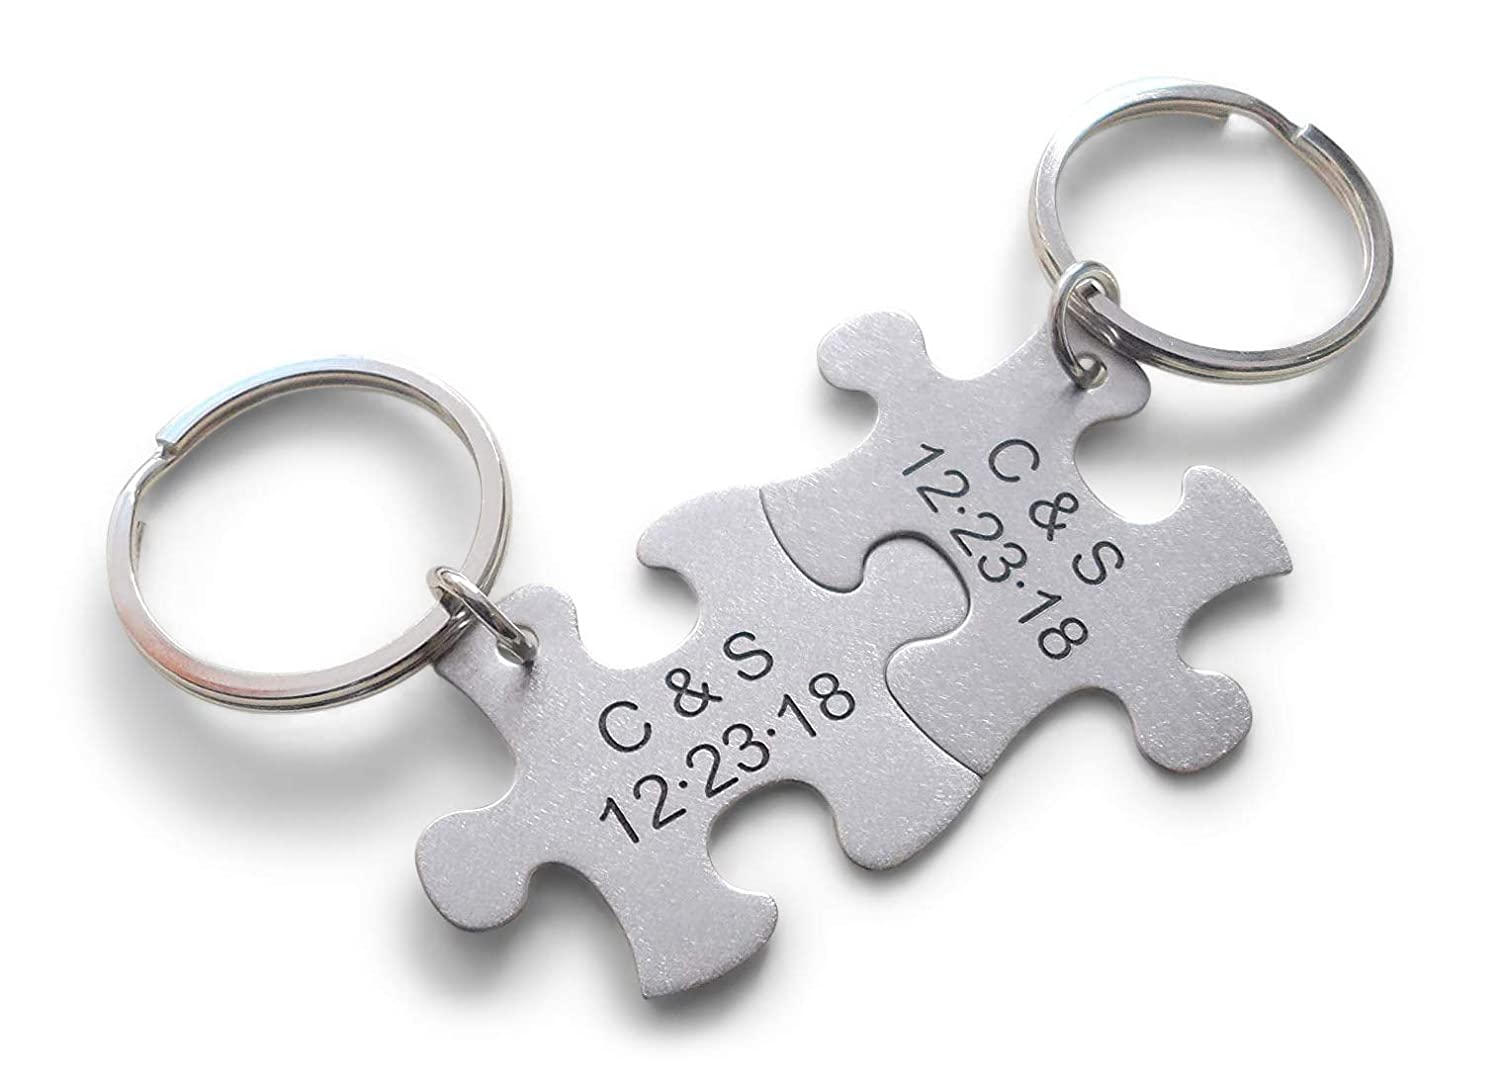 Boyfriend Girlfriend Gift Stainless Steel Couples Keychains Husband Wife Key Chains Custom Personalized Puzzle Keychains Anniversary Gift Engraved Keychains